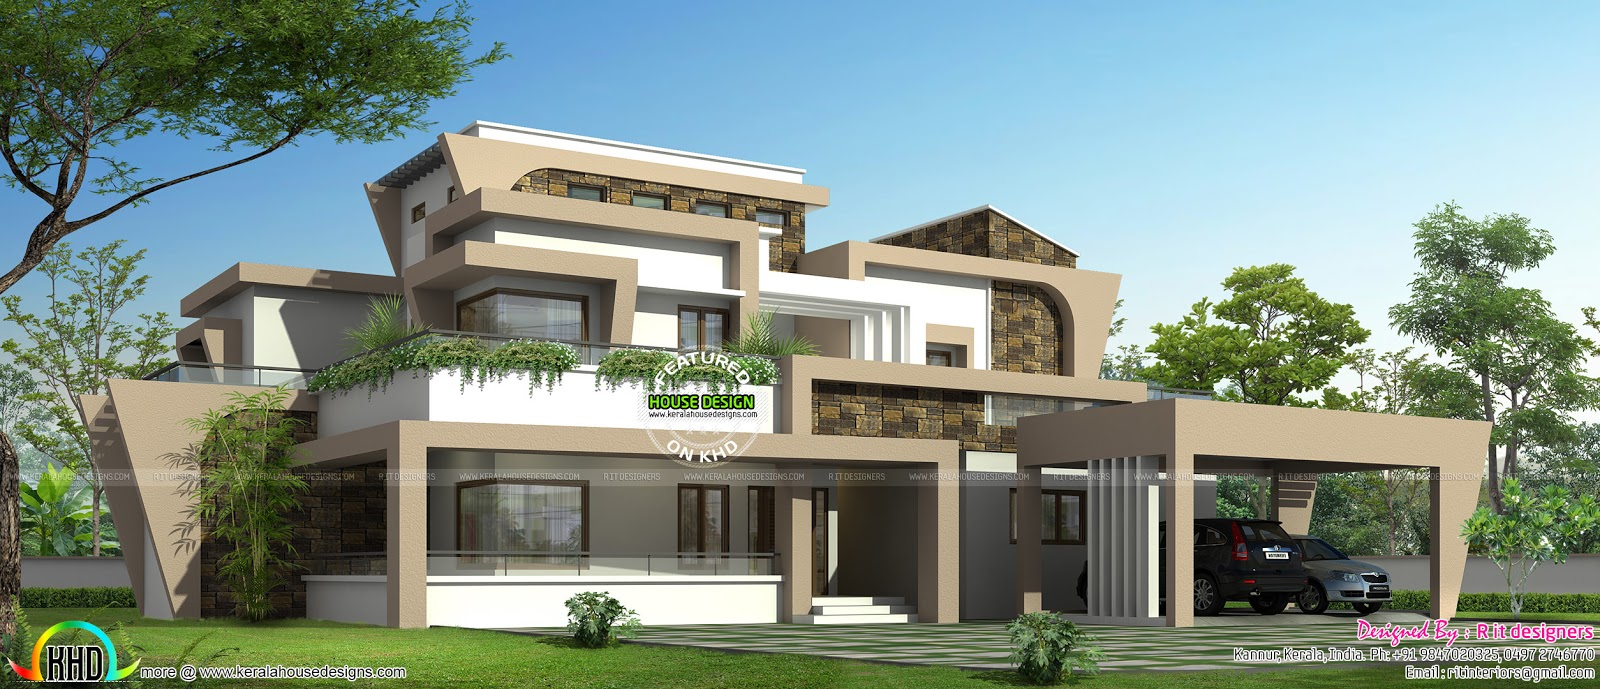 Unique modern home design in kerala kerala home design for Modern unique house plans